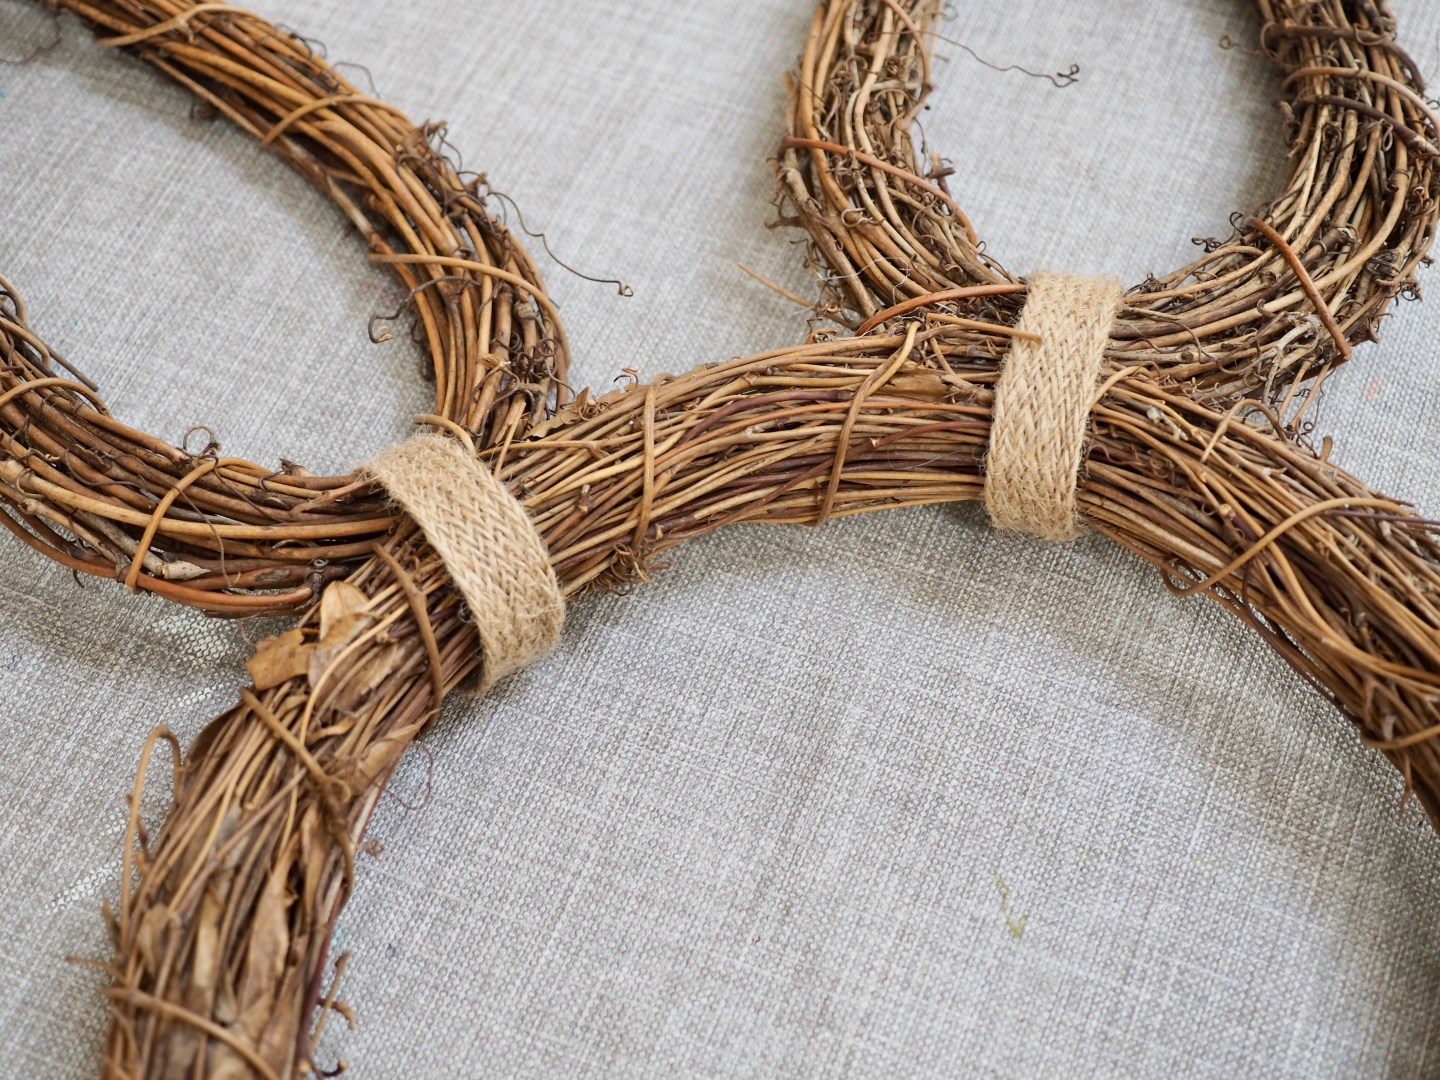 How To Make An Easter Bunny Wreath With Wooden Orange Carrots